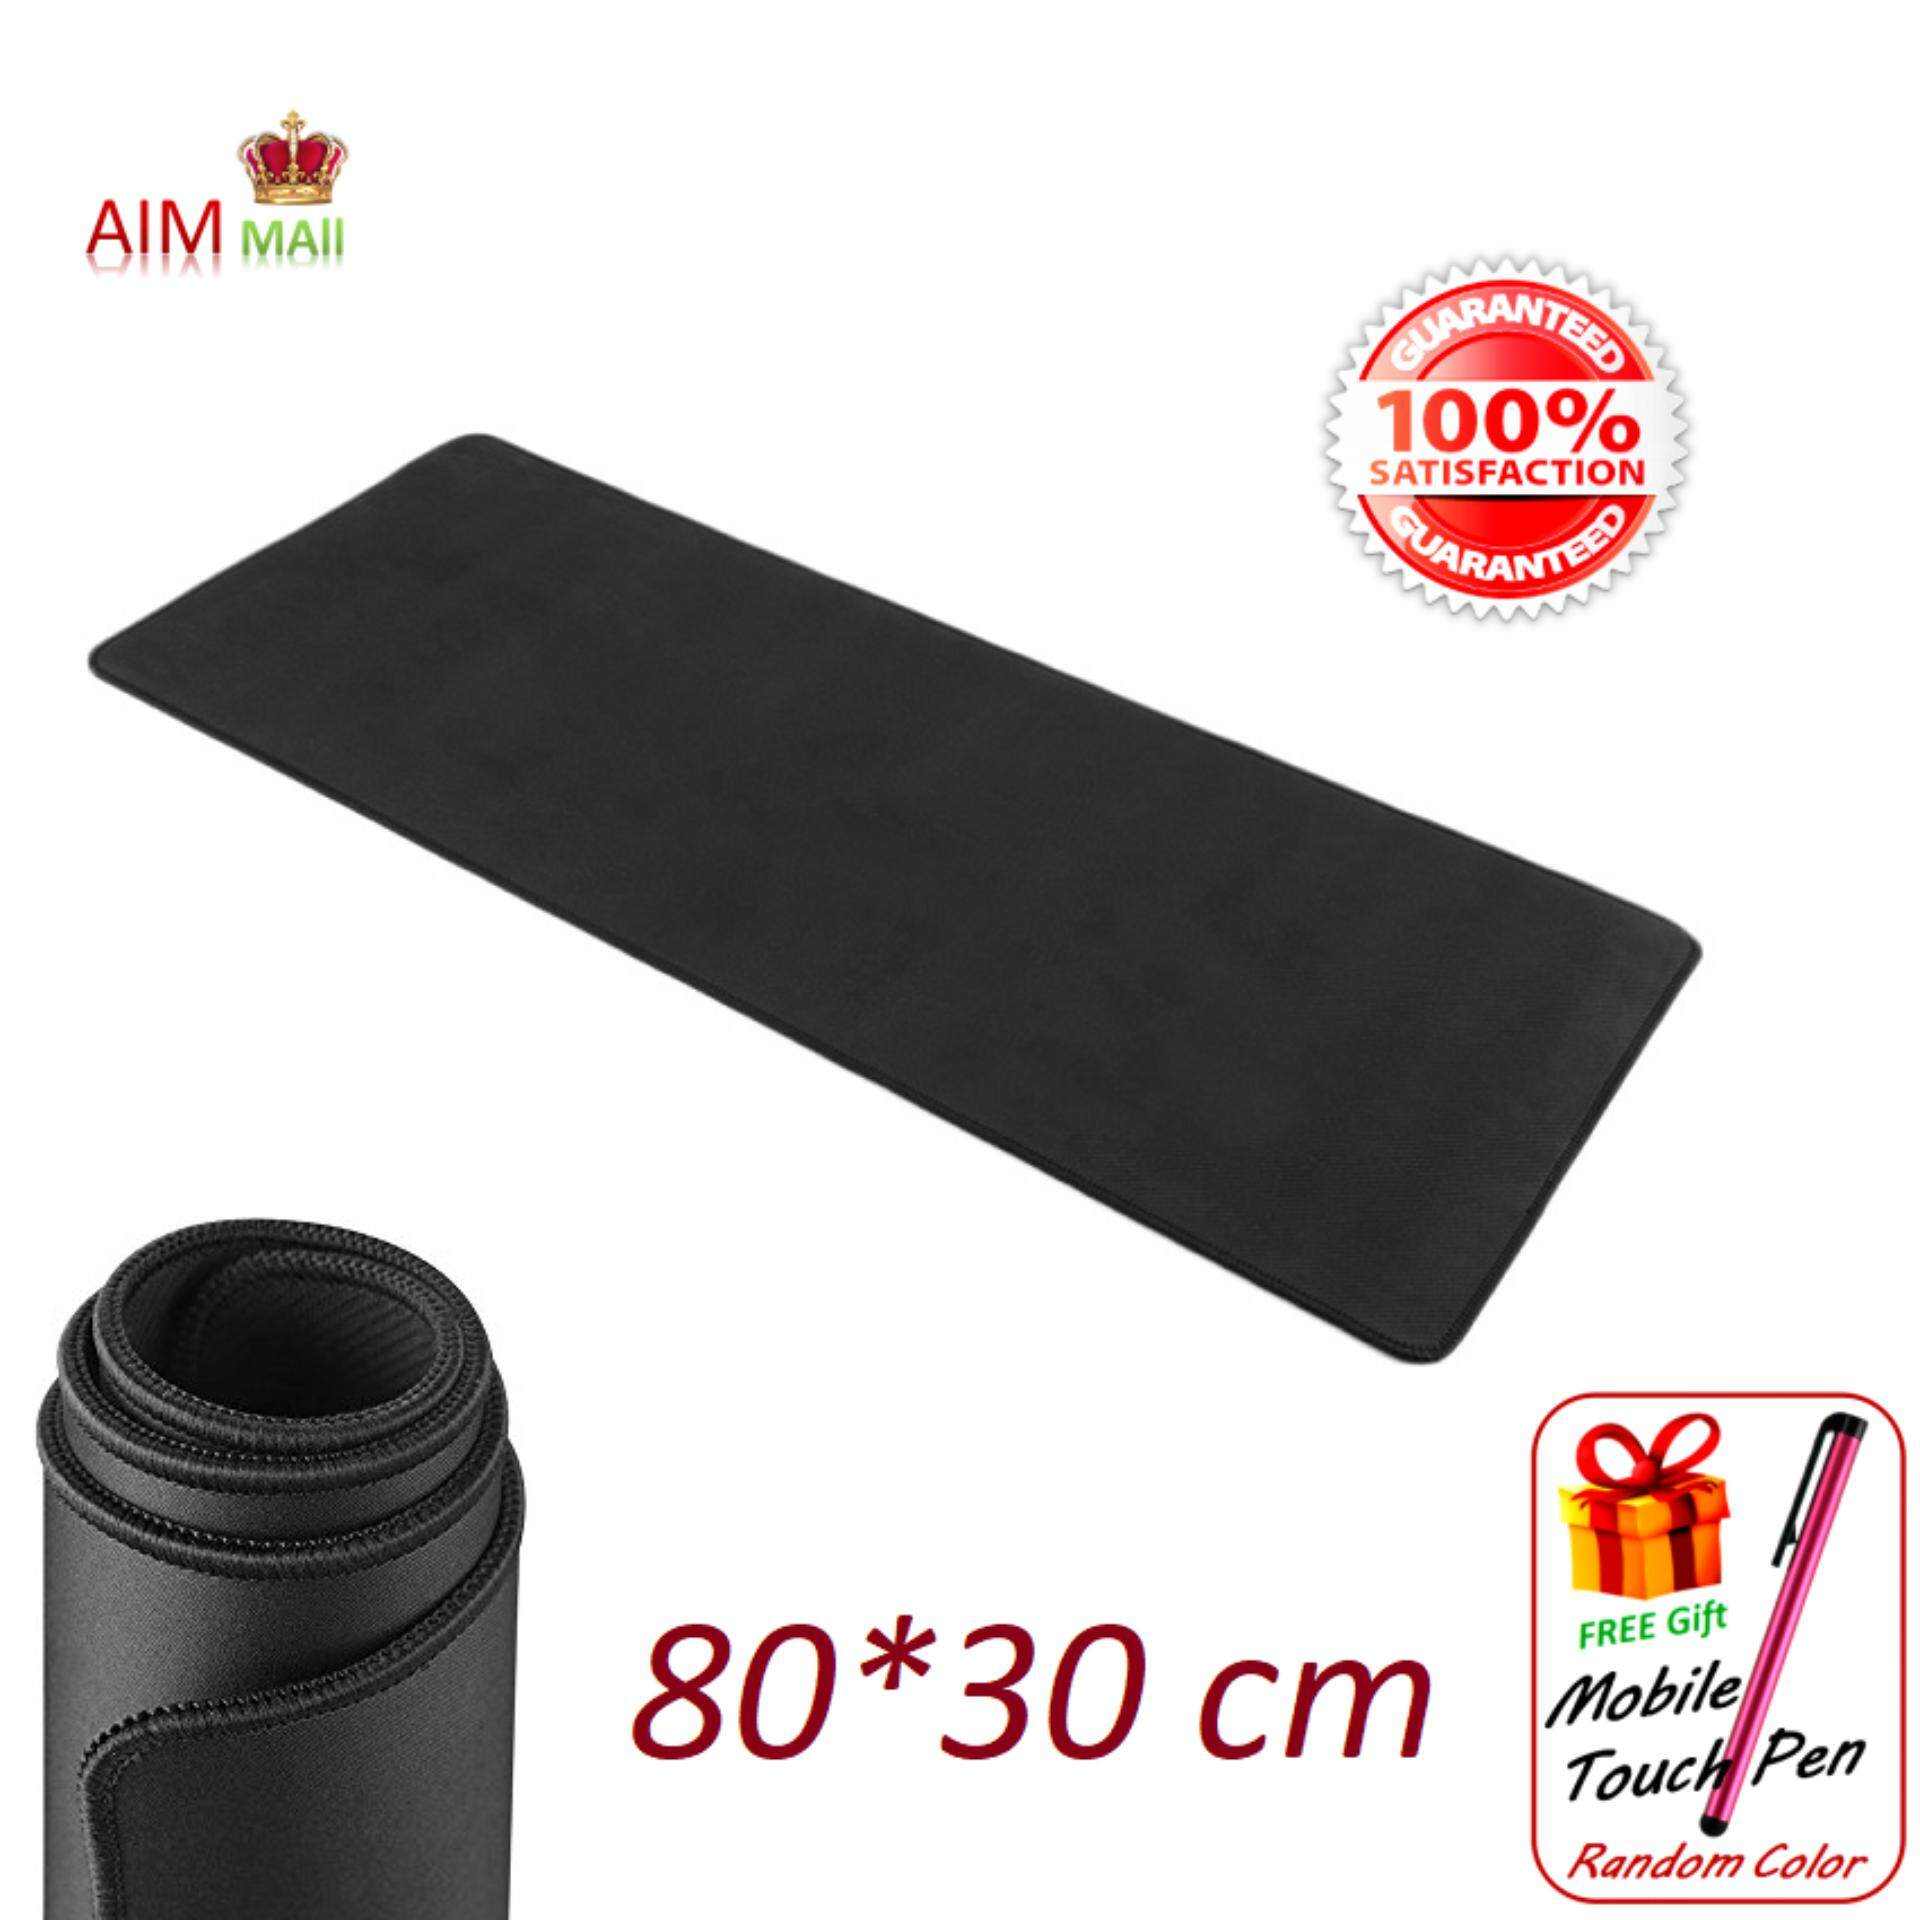 80*30 cm Extra Large size Smooth Surface and Anti-Slip Gaming Mouse Pad Malaysia